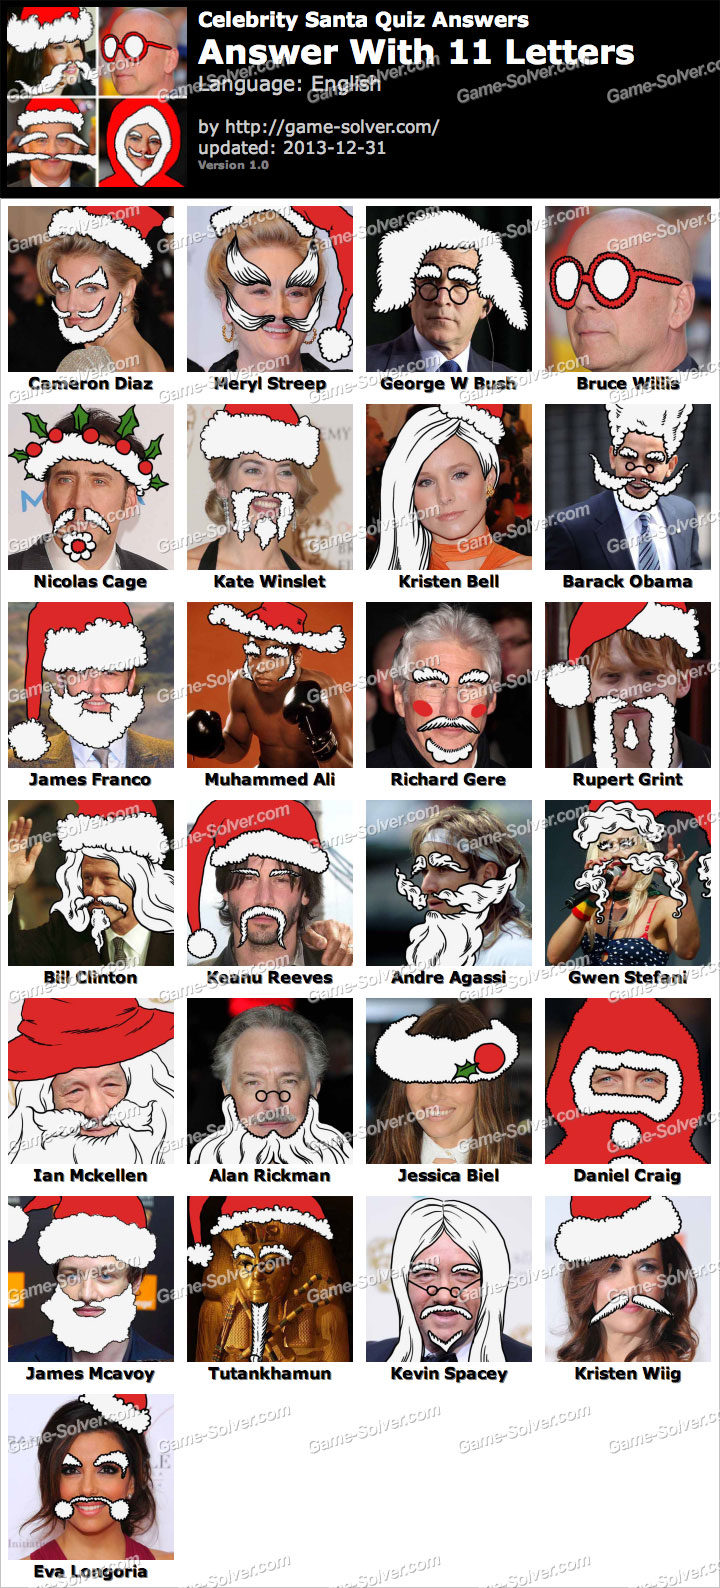 Celebs dressed as Santa Claus | Gallery | Wonderwall.com